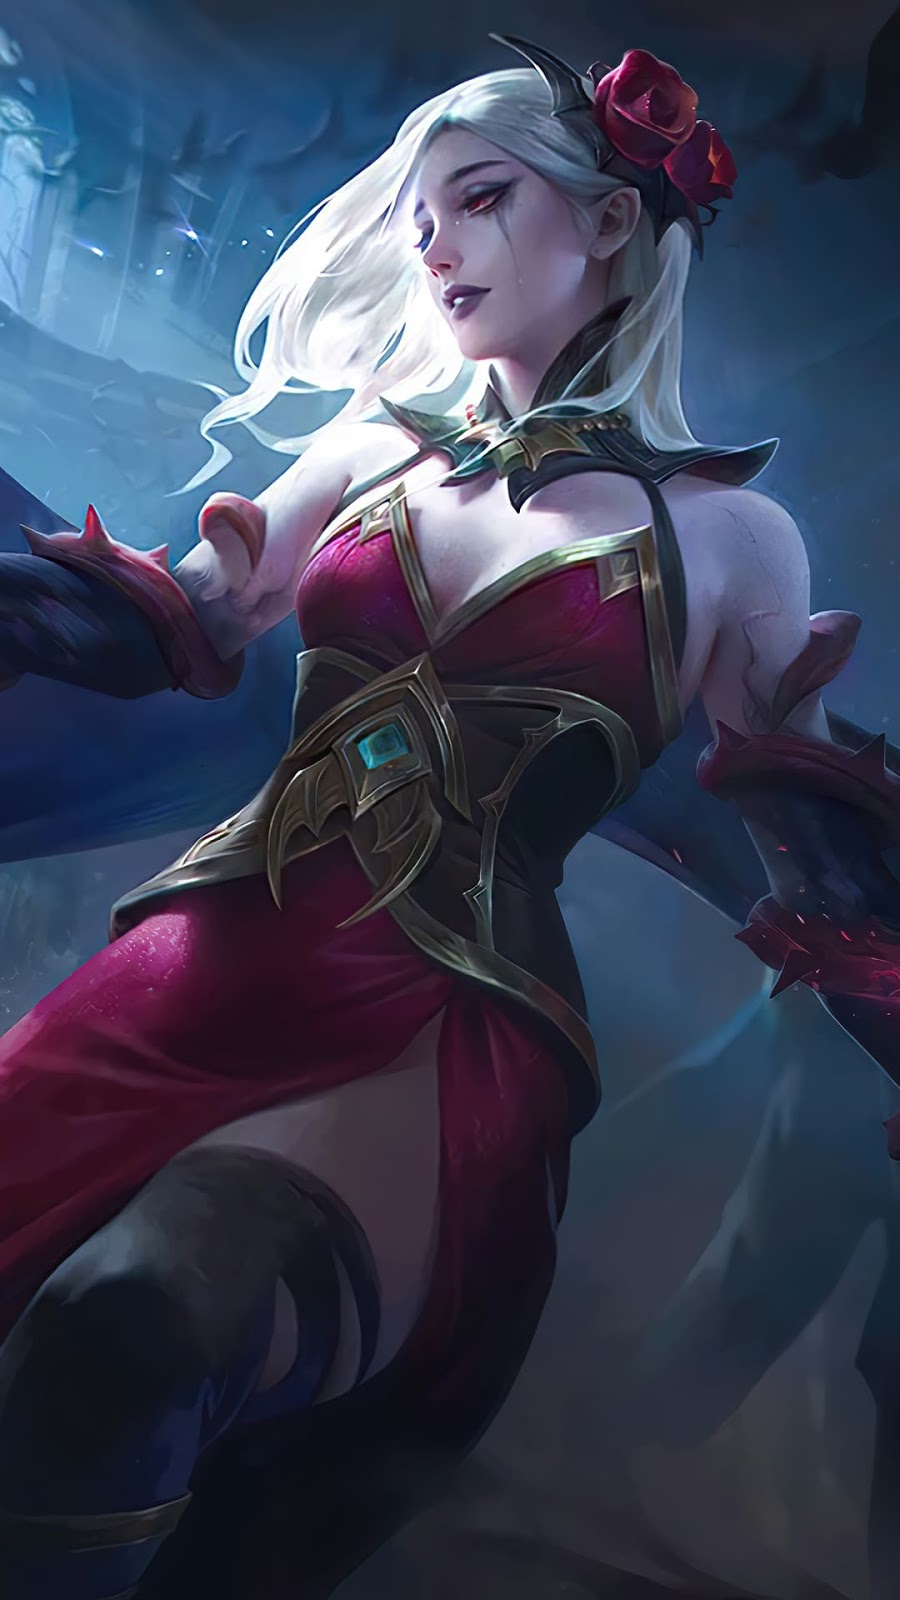 Wallpaper Carmilla Shadow of Twilight Skin Mobile Legends HD for Mobile